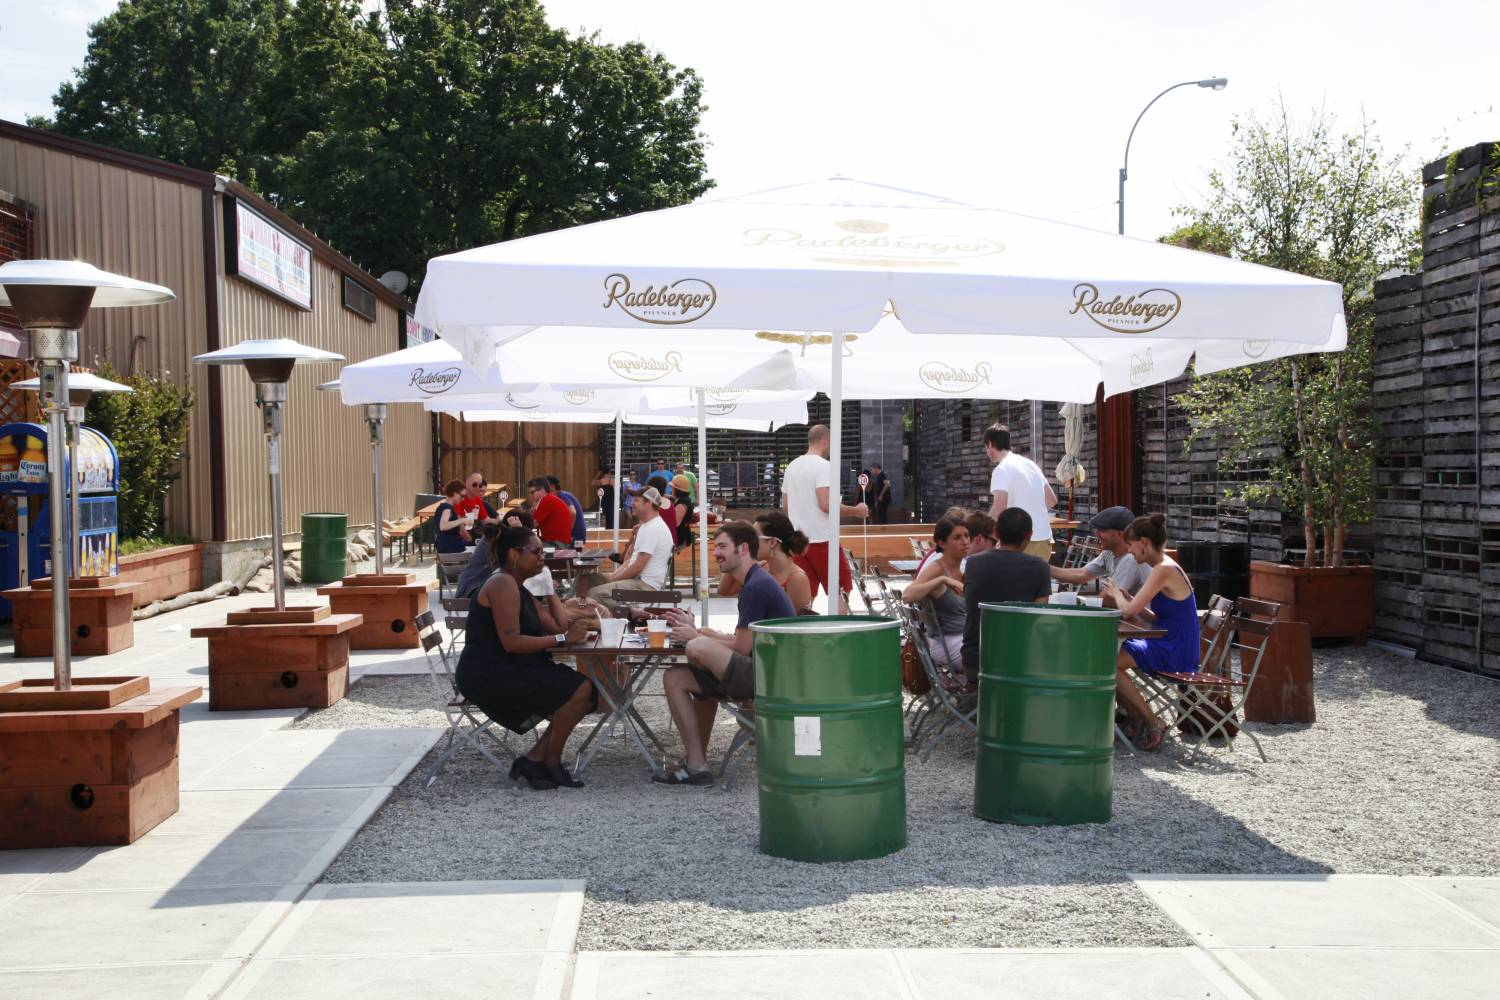 Greenwood Park Beer Garden outdoor area